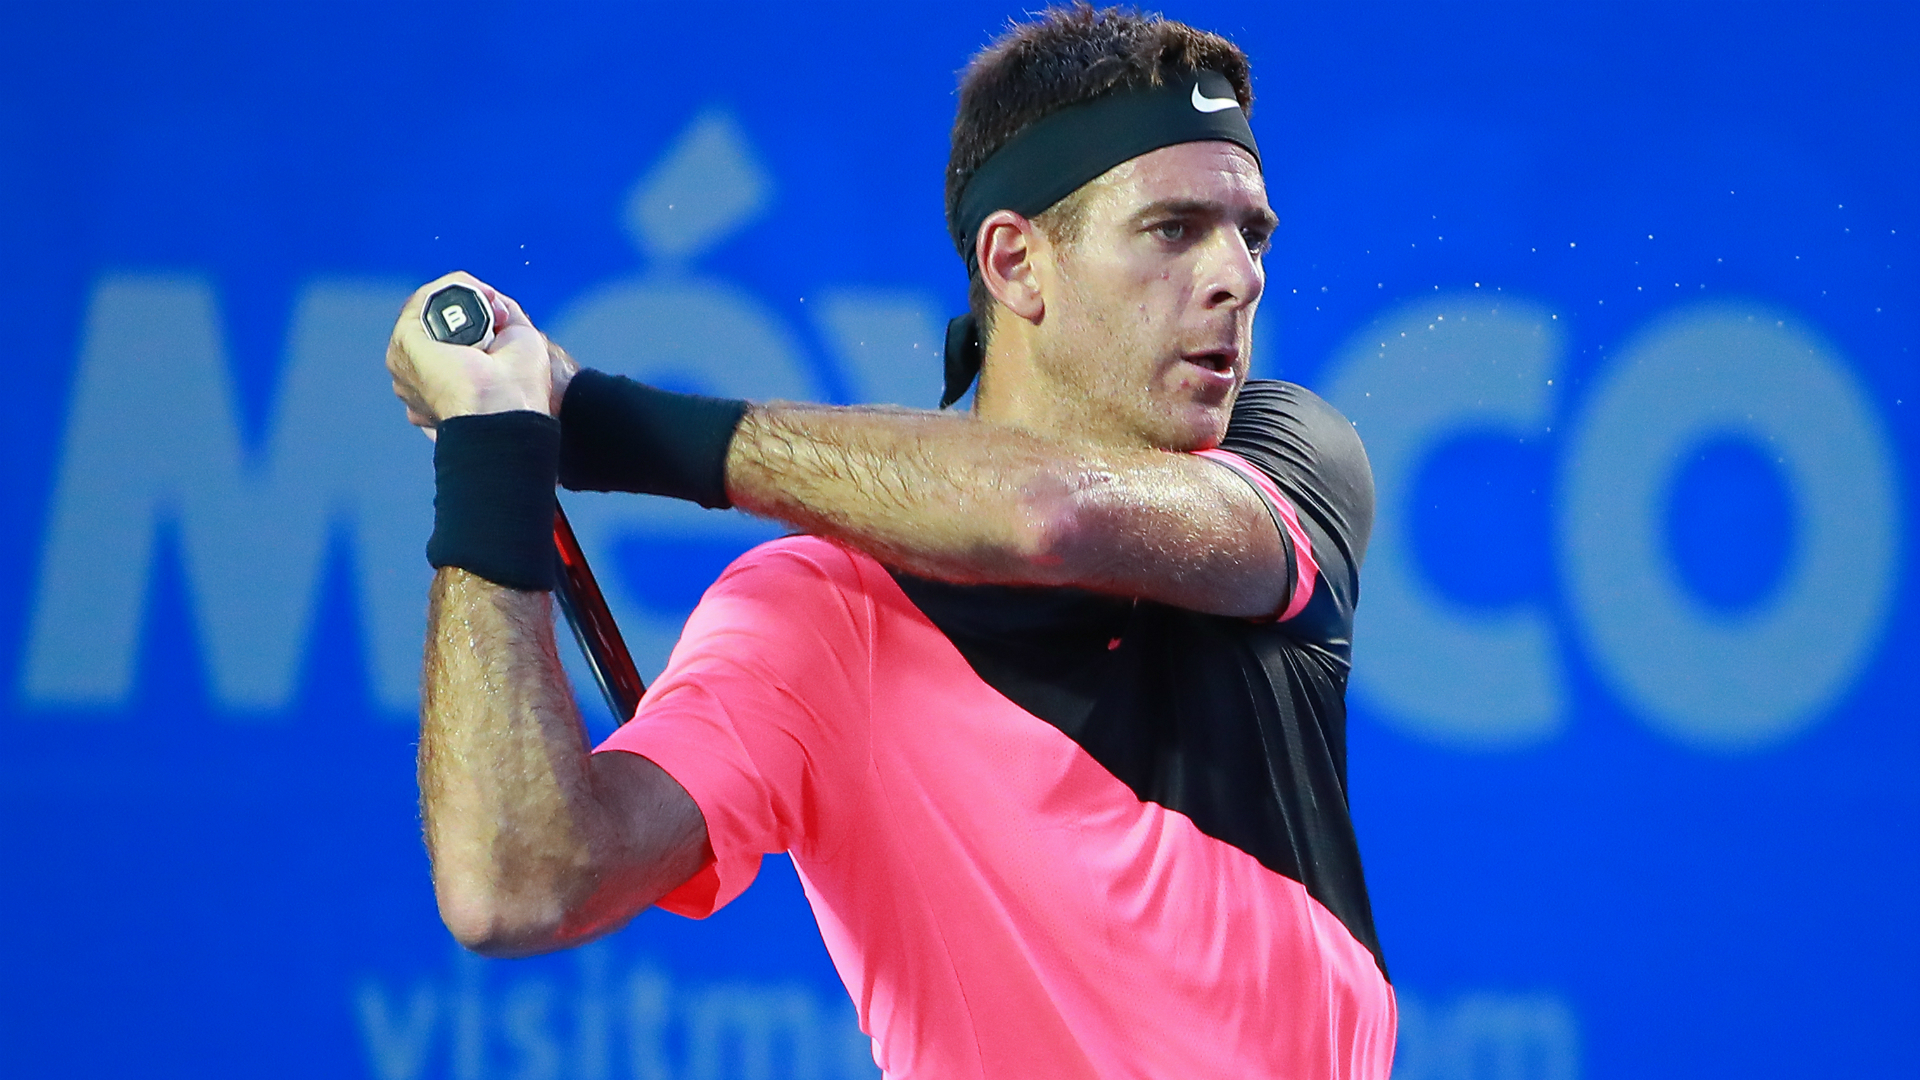 Juan Martin del Potro made it through to the last eight by outlasting Spanish veteran David Ferrer 6-4 4-6 6-3 in Acapulco on Wednesday.